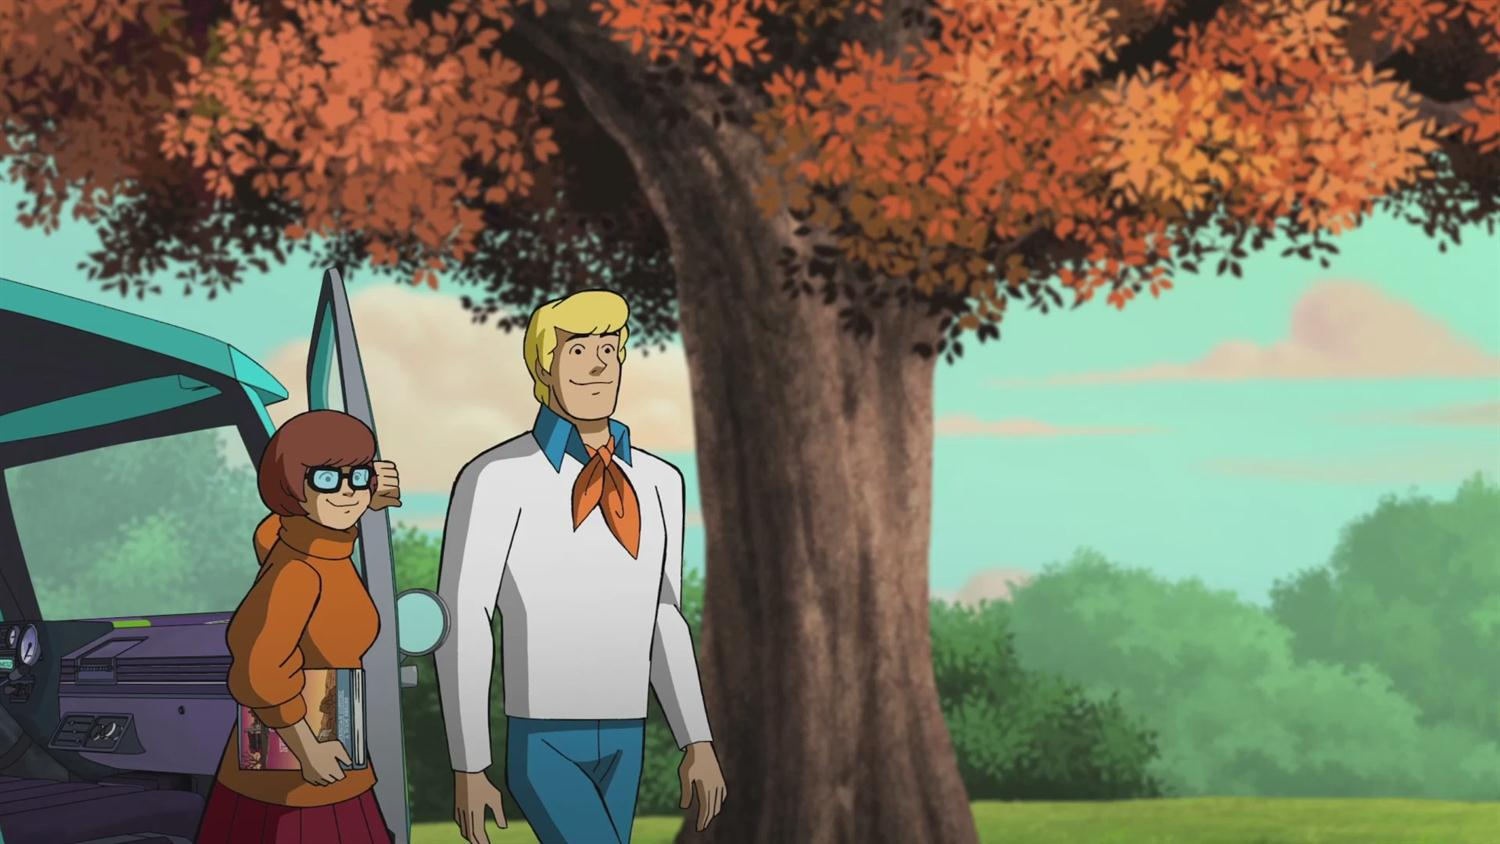 A First Look at: Scooby Doo! And the Gourmet Ghost